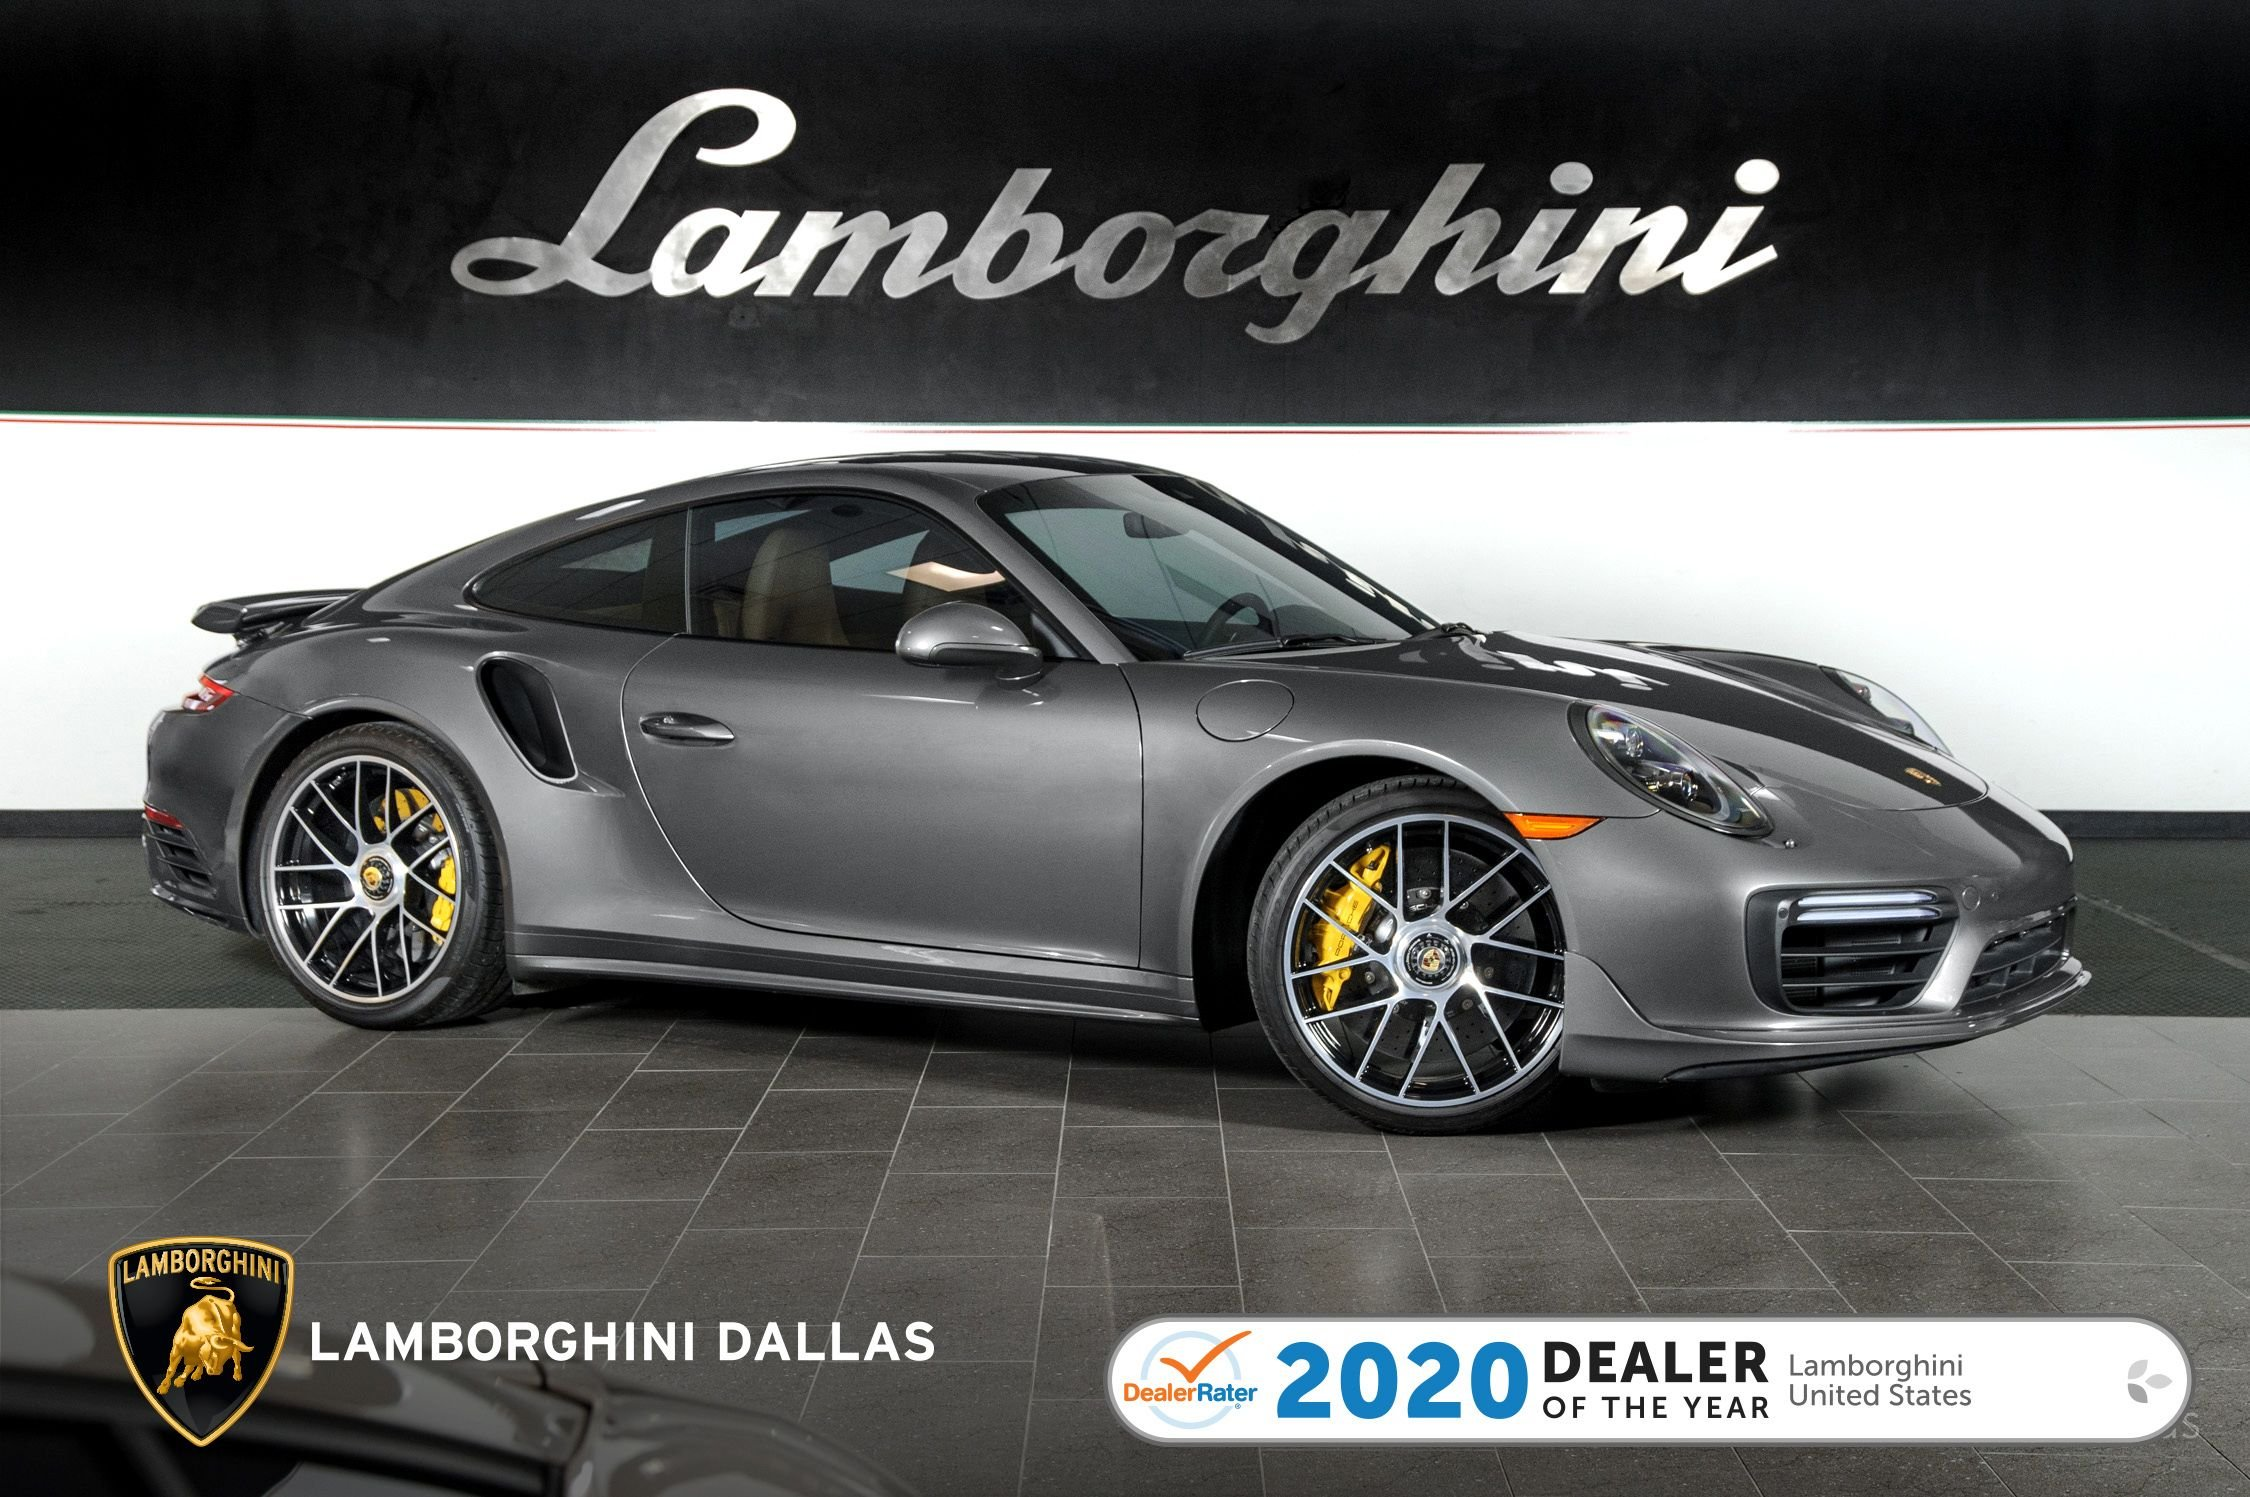 used 2018 Porsche 911 Turbo S car, priced at $179,999